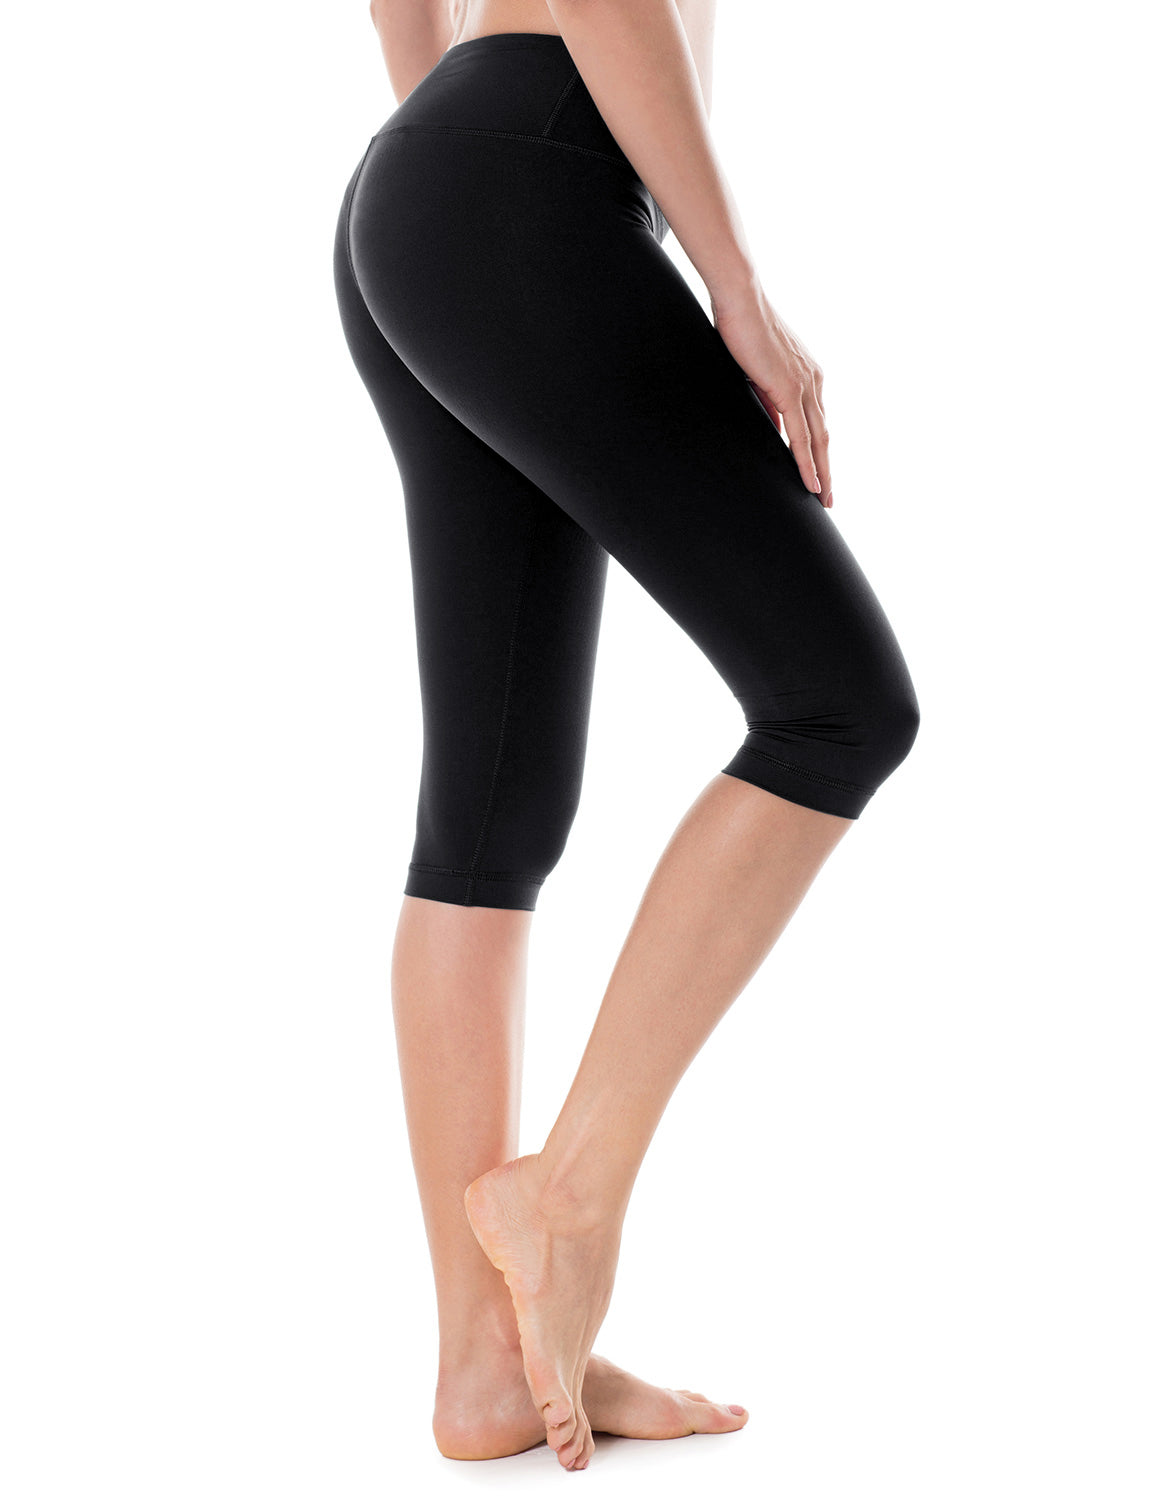 Women's Running Tights fit Workout Capris Cropped Yoga Pants with Pockets